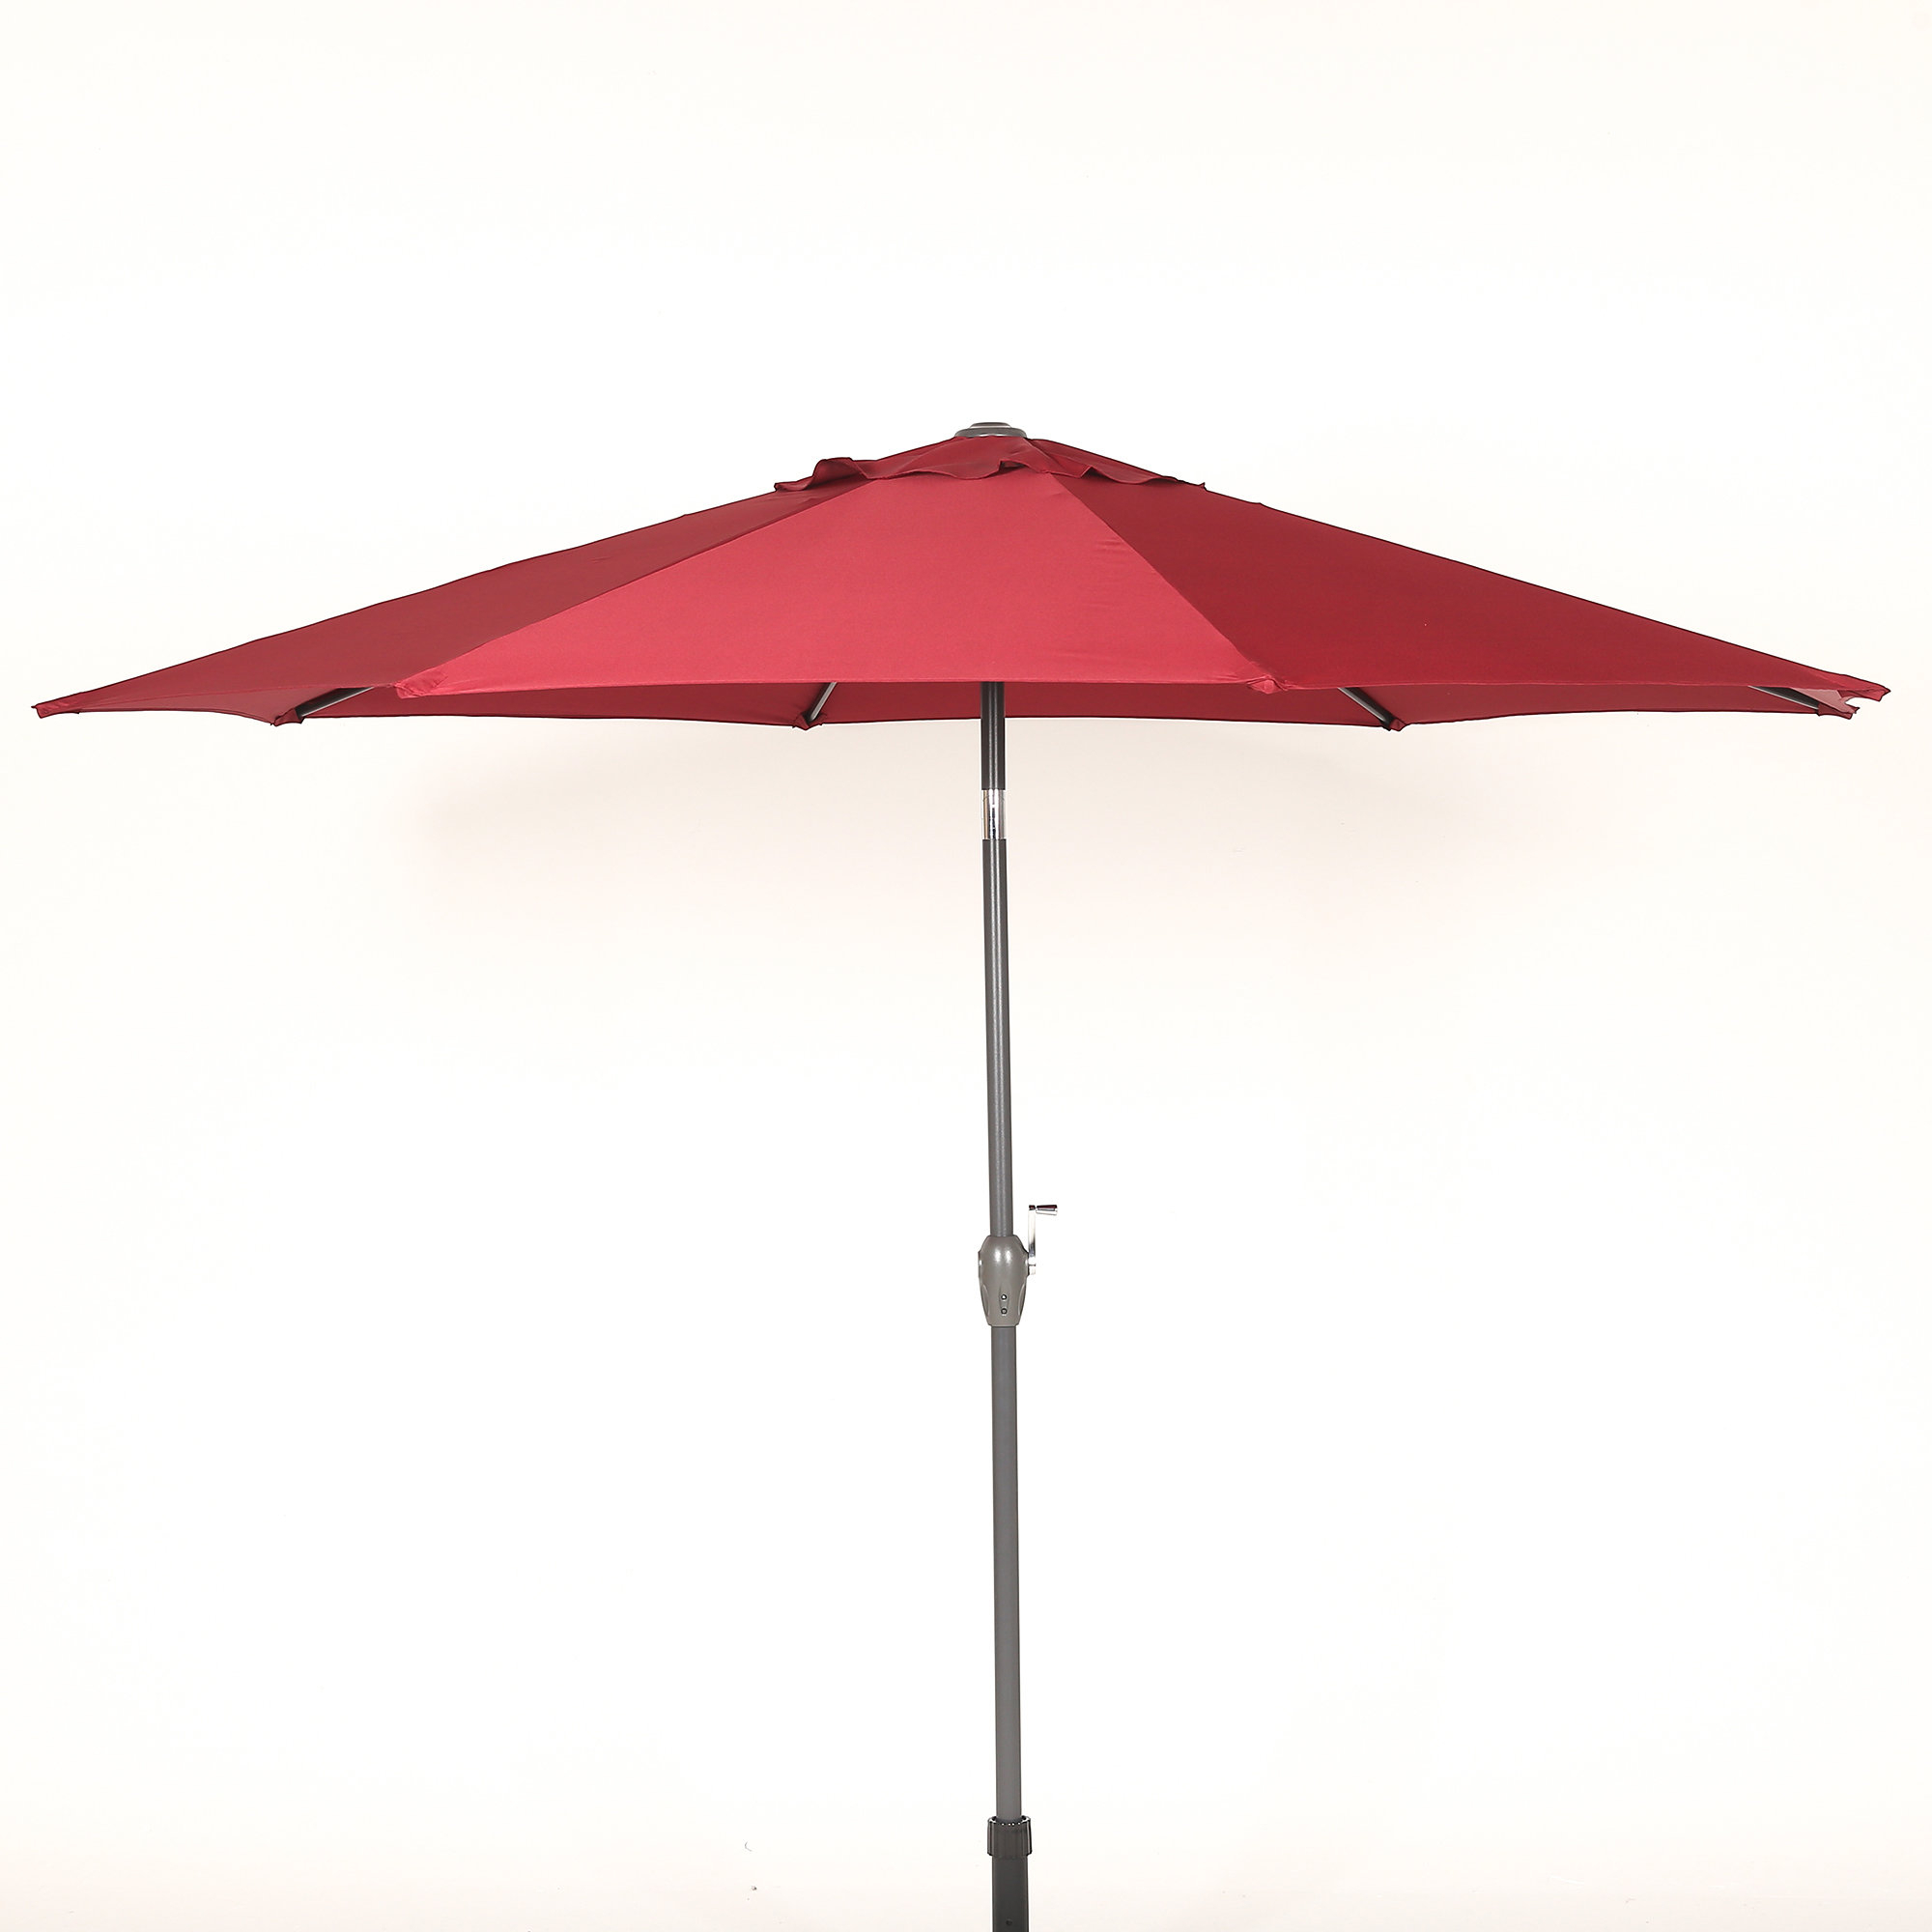 2020 Markley Market Beach Umbrellas Regarding Hatten 10' Market Umbrella (Gallery 10 of 20)